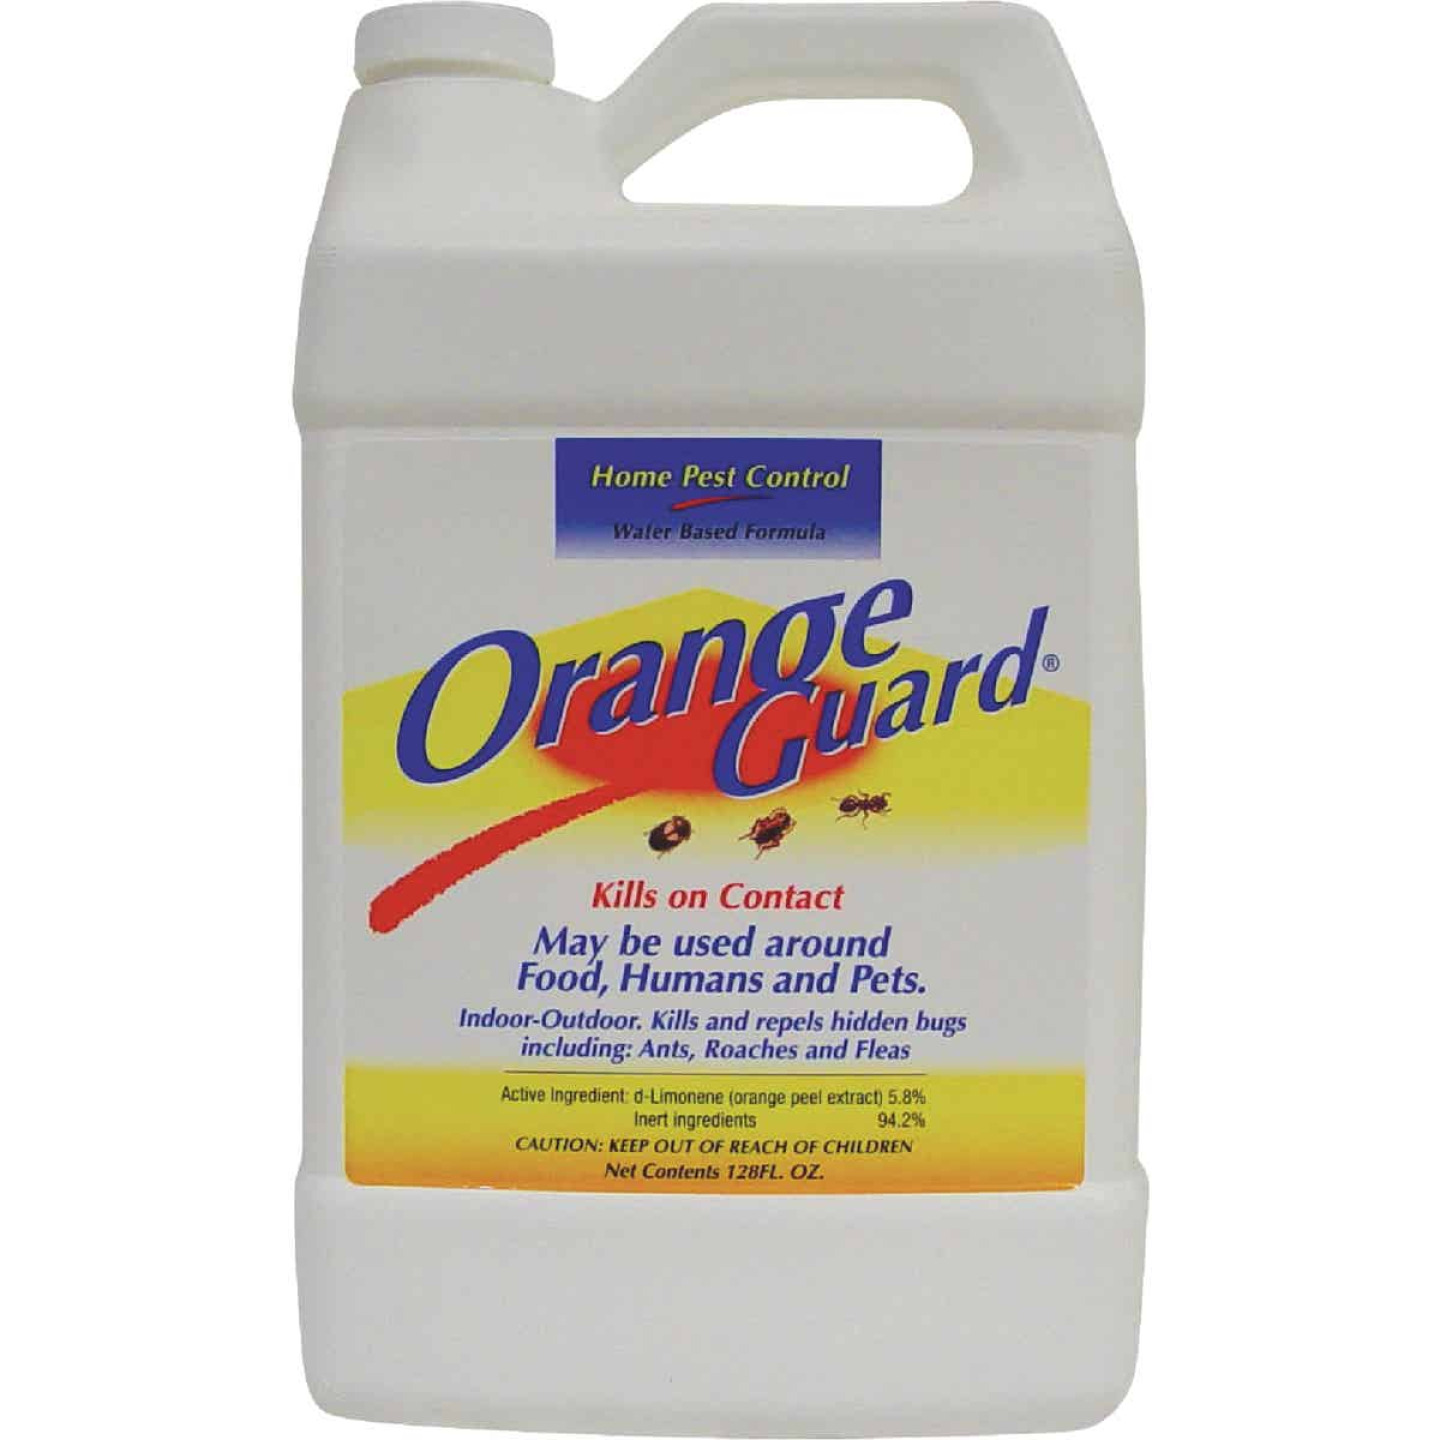 Orange Guard 1 Gal. Ready To Use Home Pest Control Insect Killer Image 1